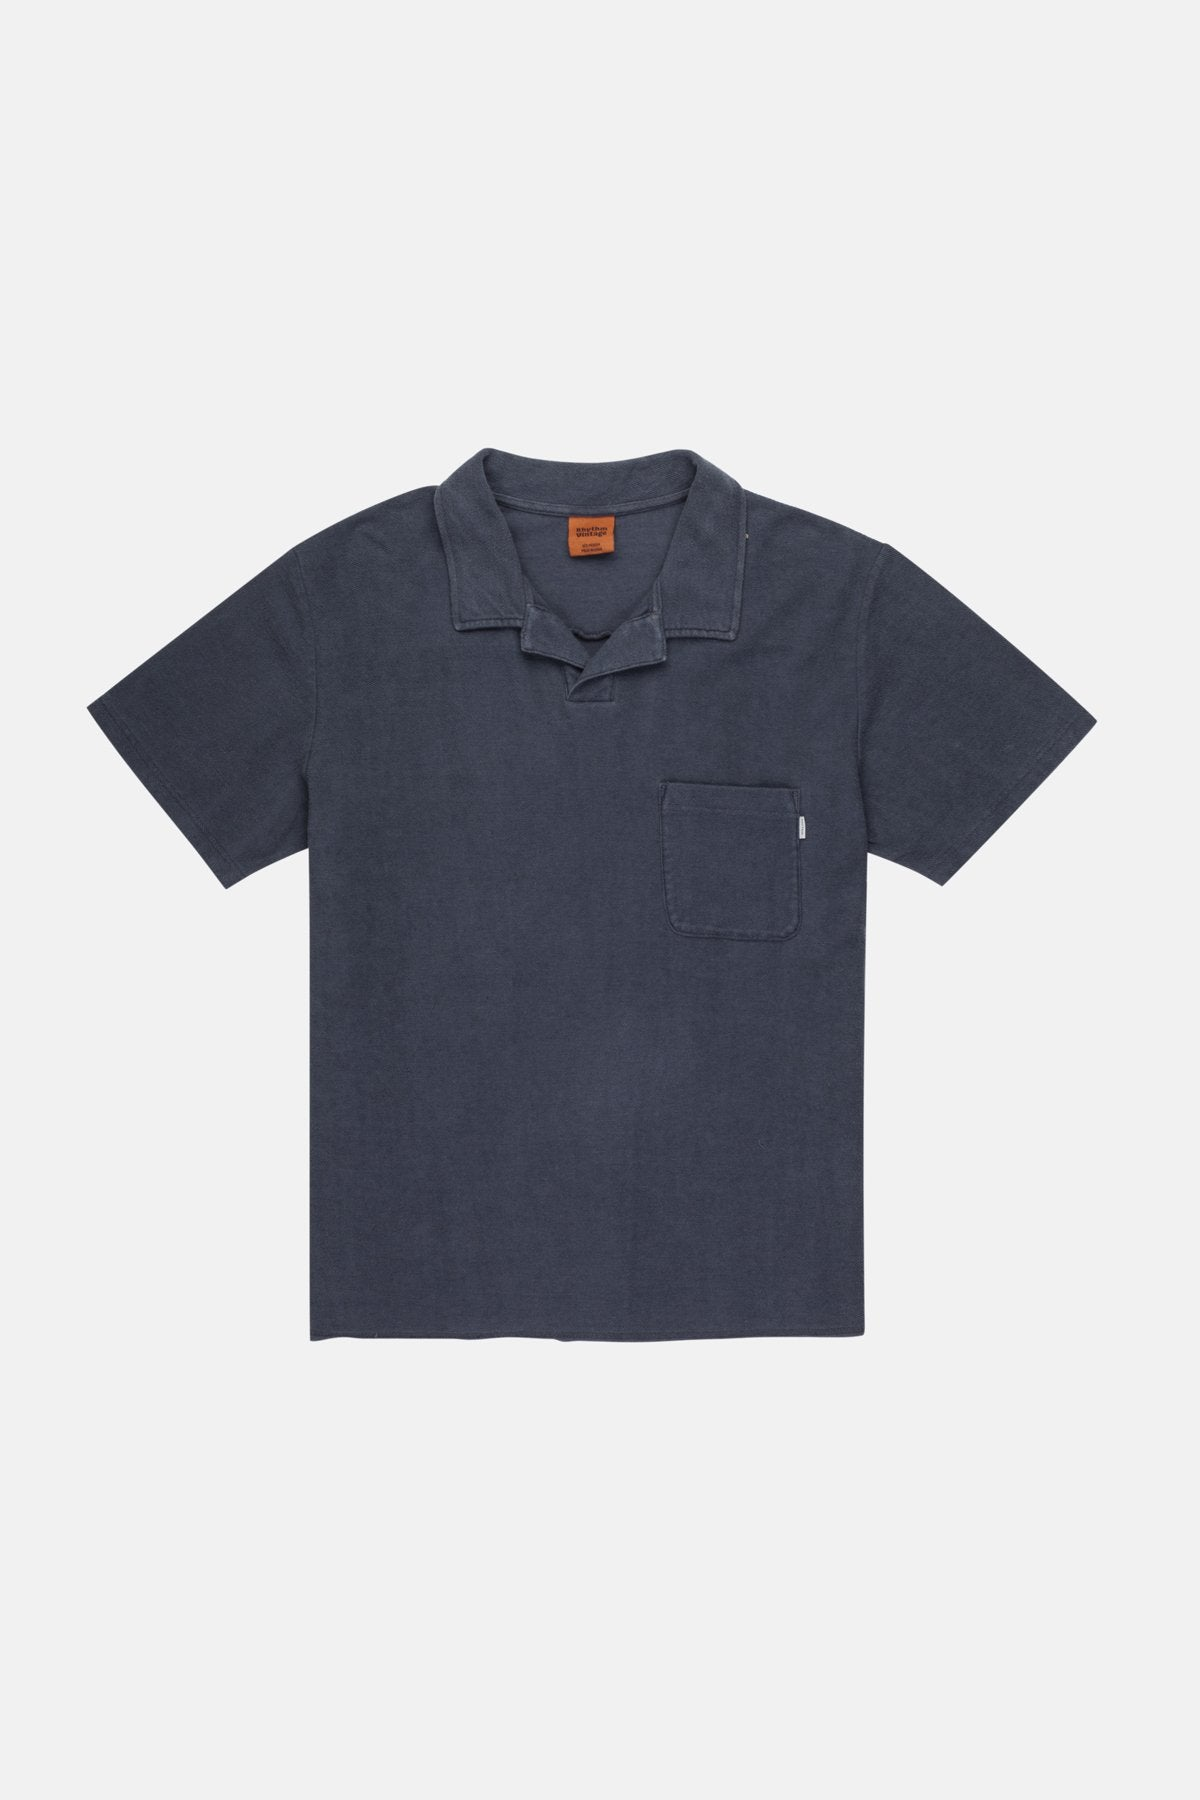 Vintage Terry Polo- Navy